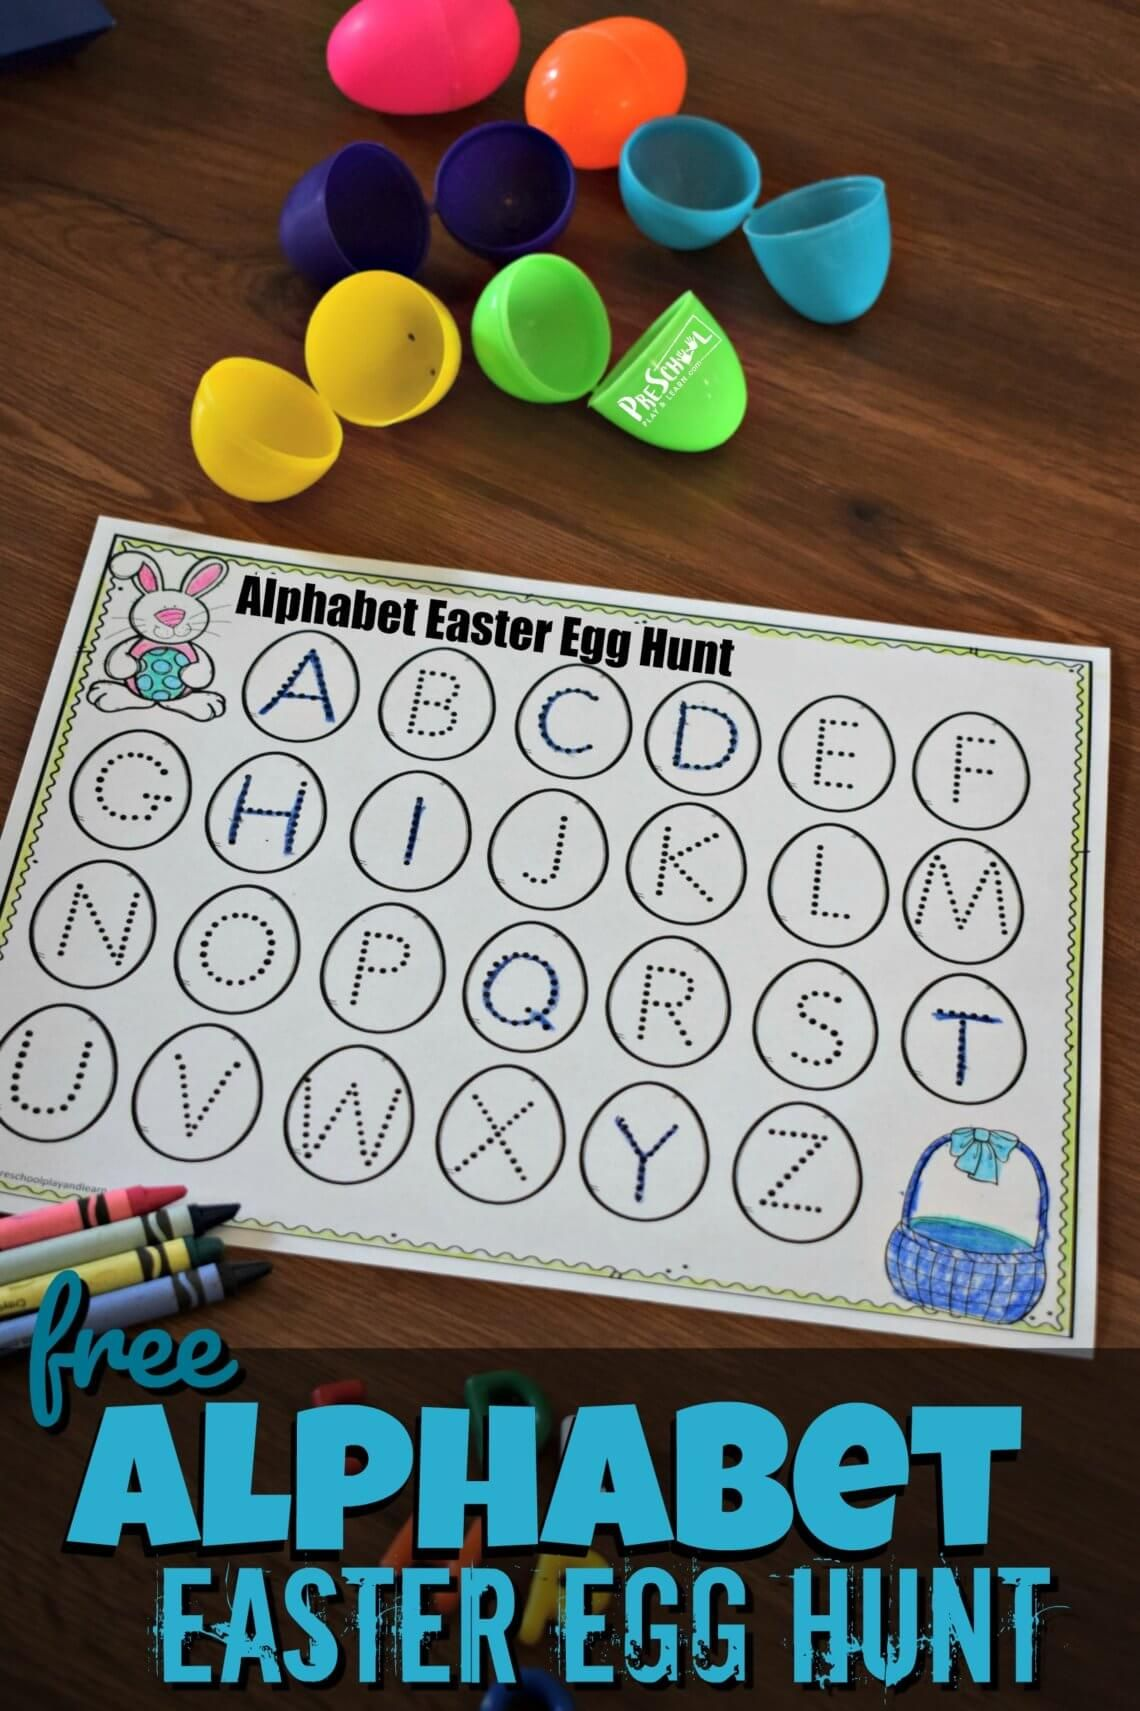 Free Alphabet Easter Egg Hunt Super Cute Alphabet